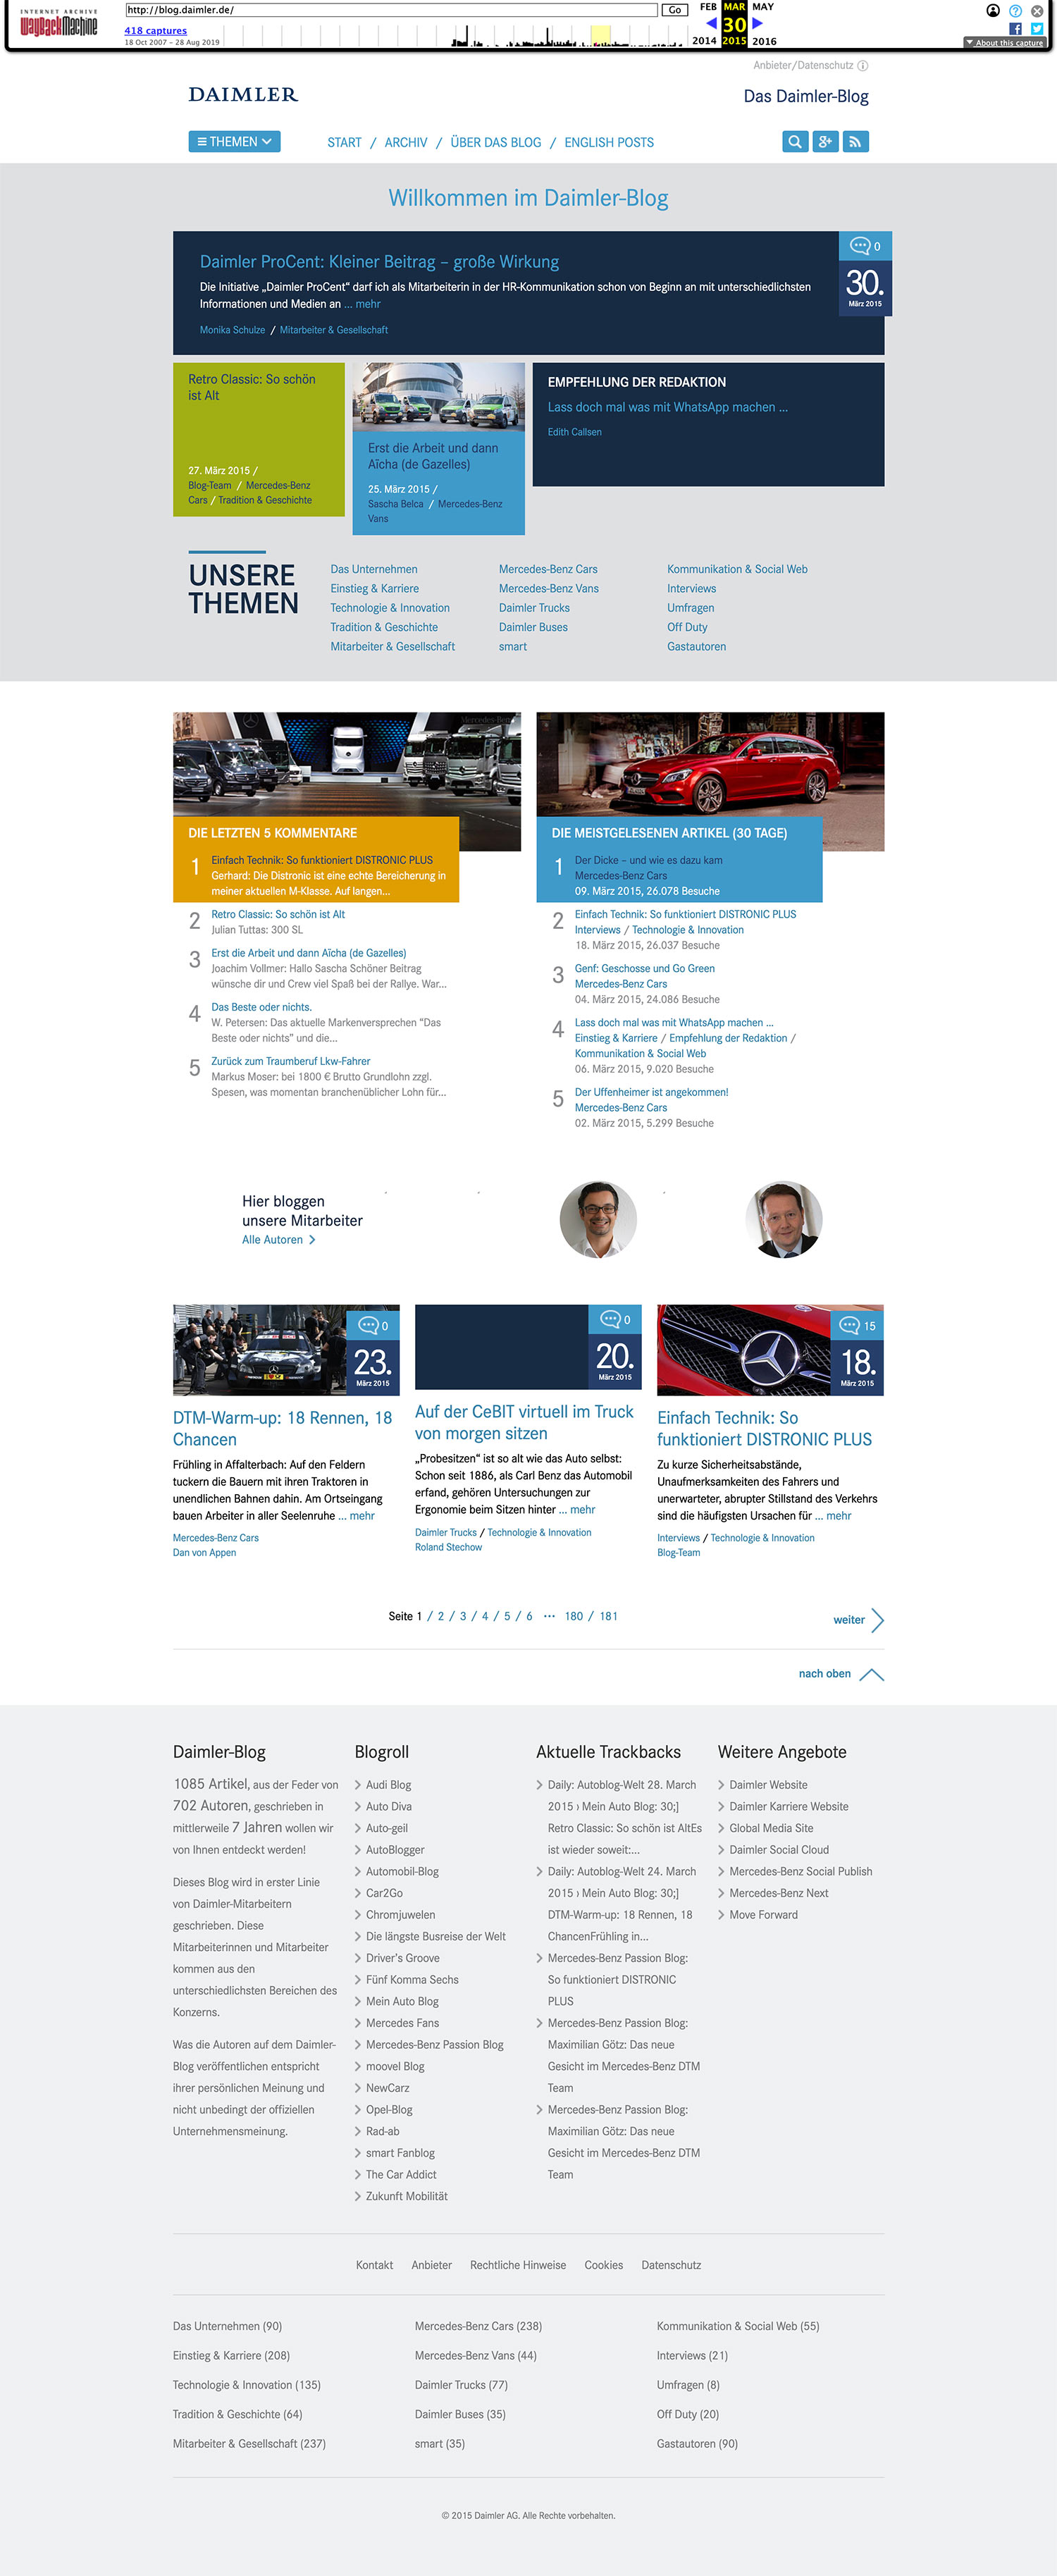 corporate blog daimler ueberblick 2015 - RIP Daimler Blog